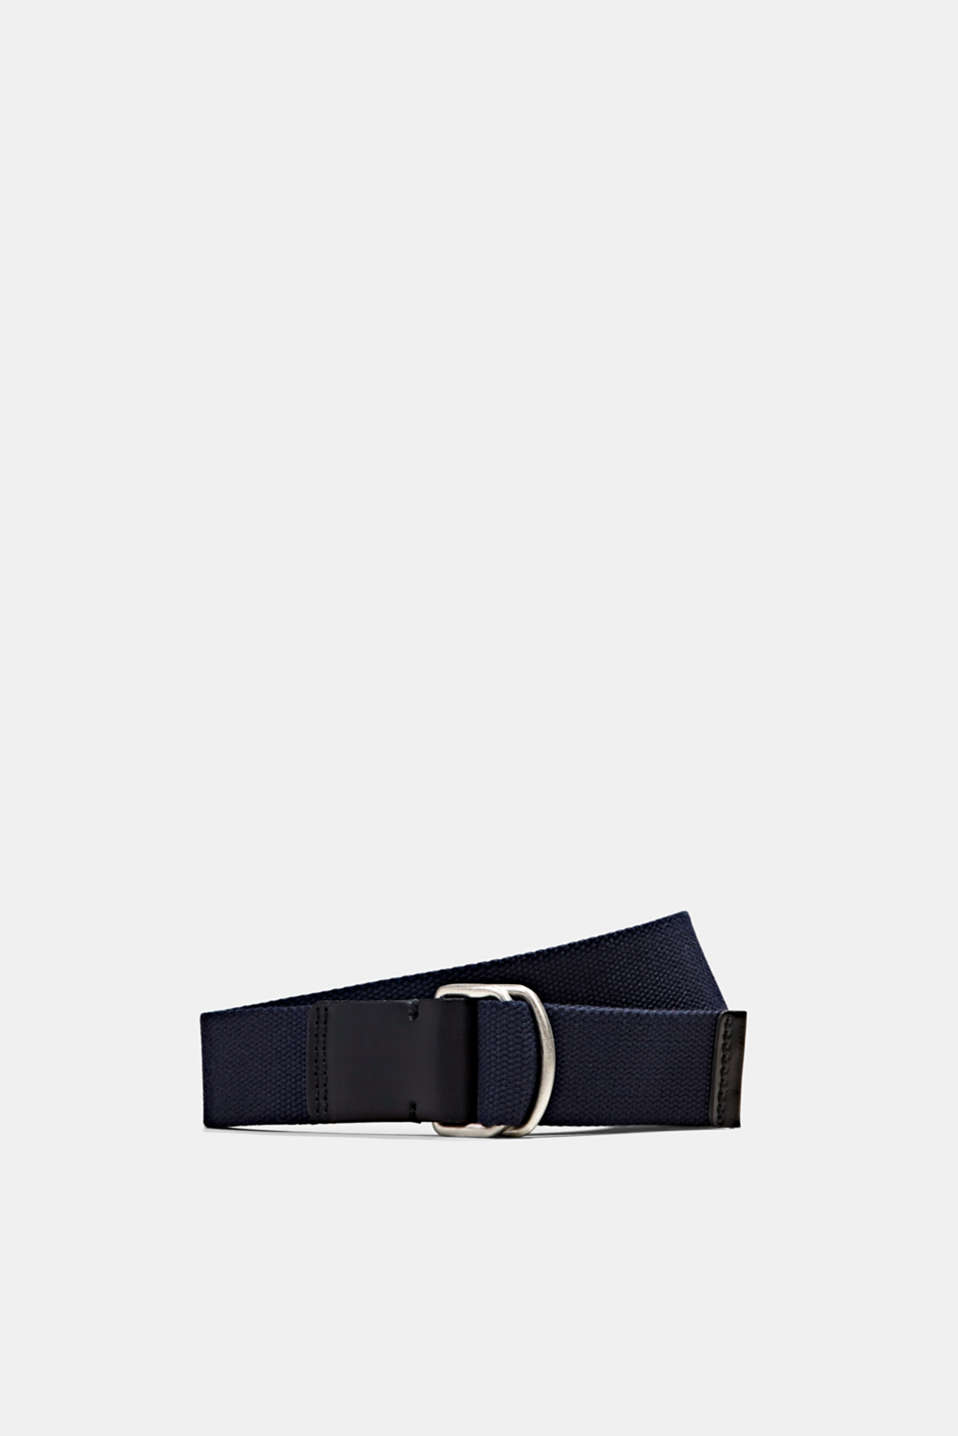 Esprit - double ring belt